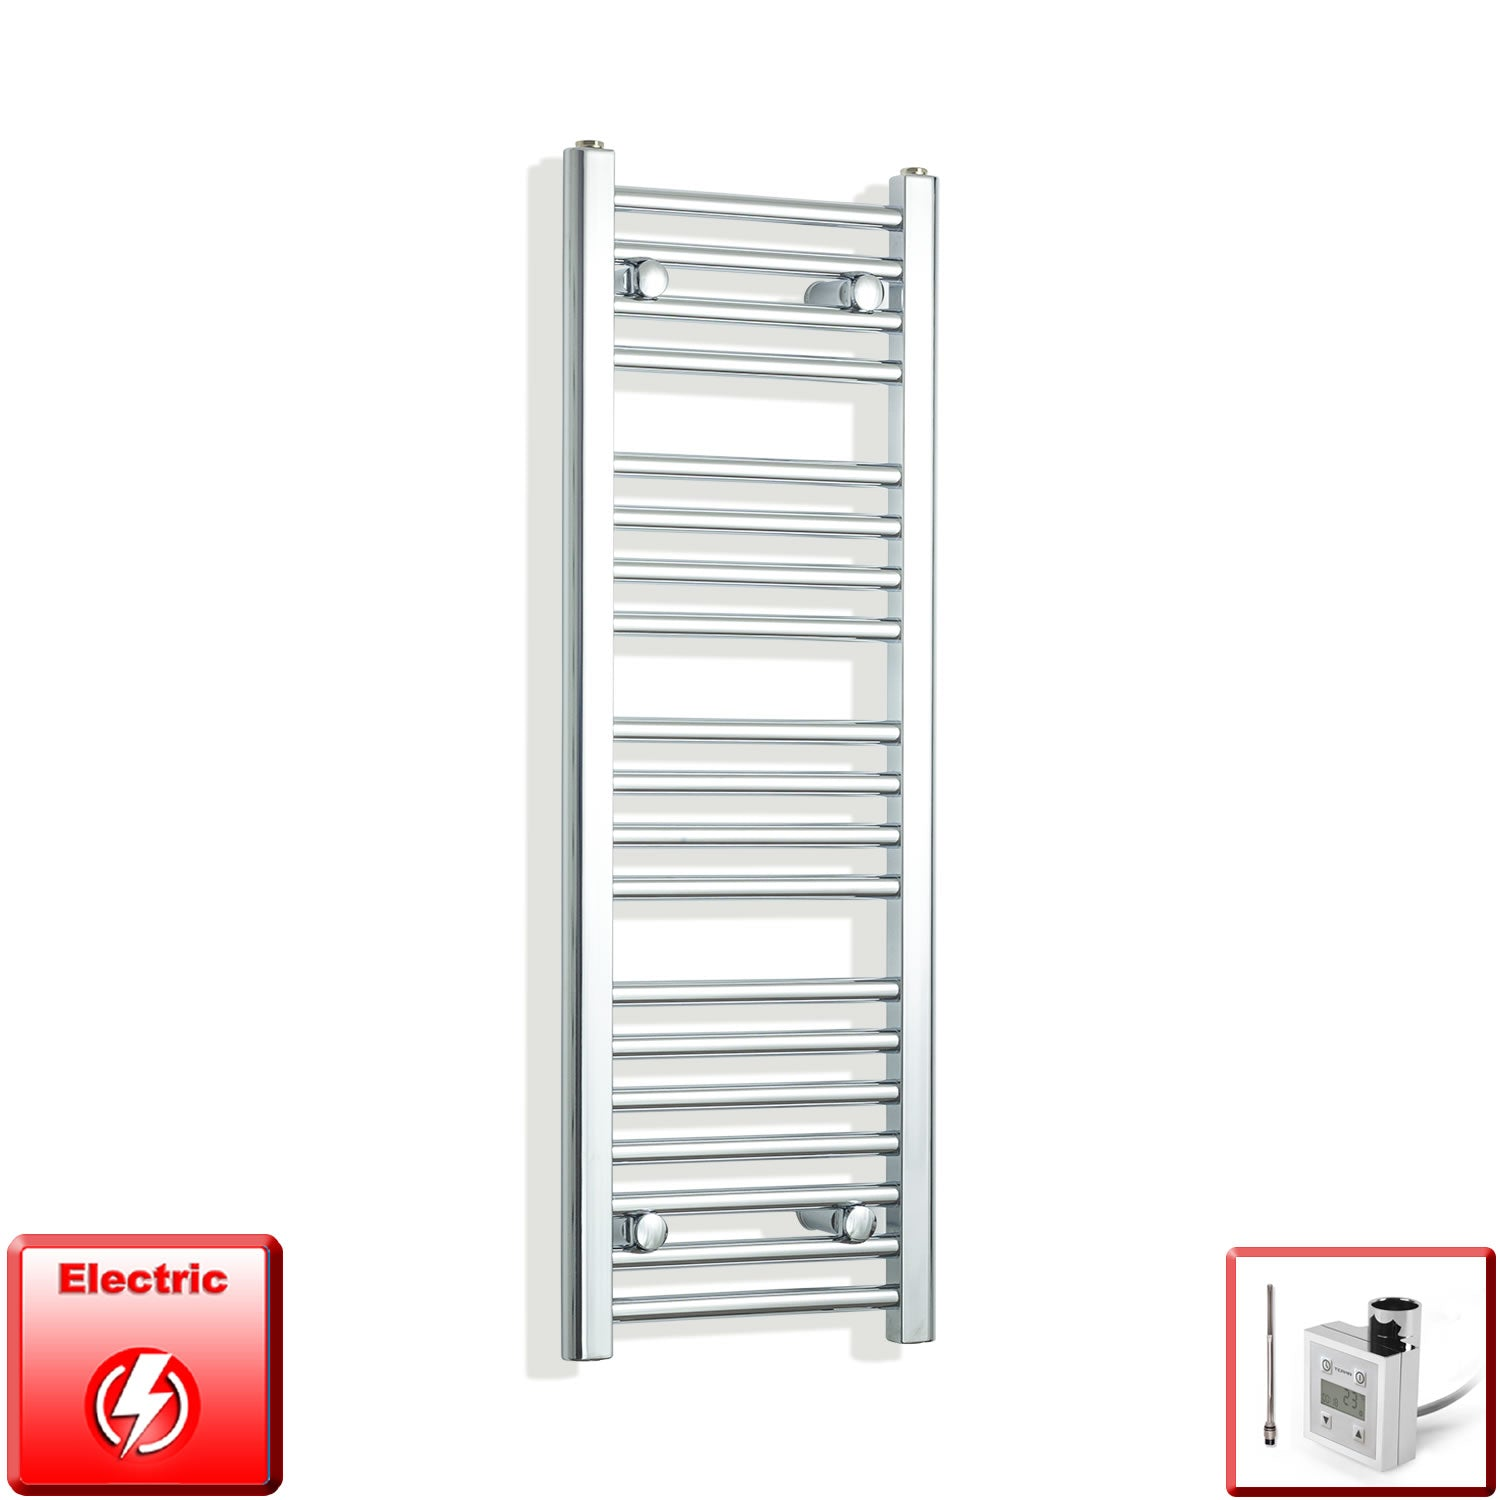 350mm Wide 1000mm High Flat Chrome Pre-Filled Electric Heated Towel Rail Radiator HTR,KTX-3 Thermostatic Element